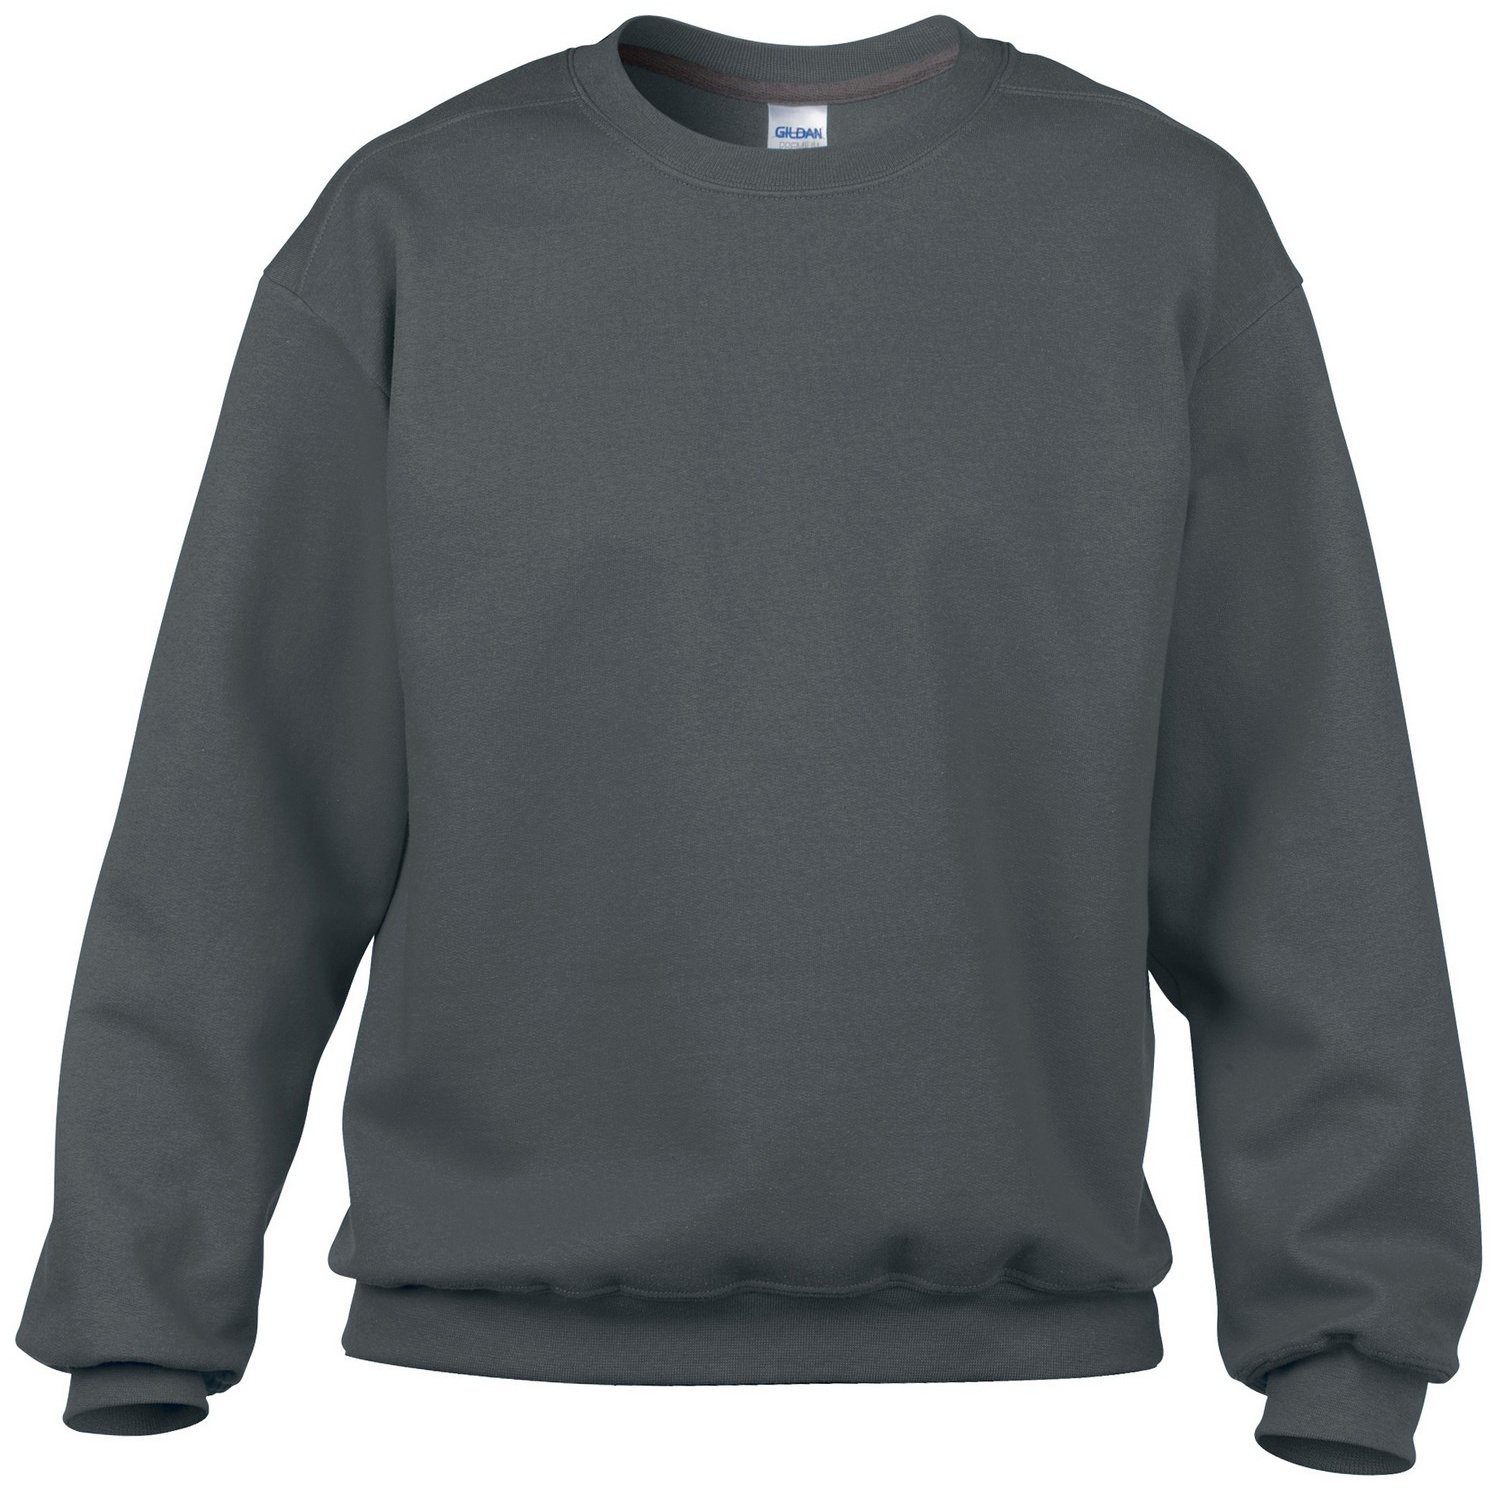 Find great deals on eBay for mens cotton sweatshirts. Shop with confidence.